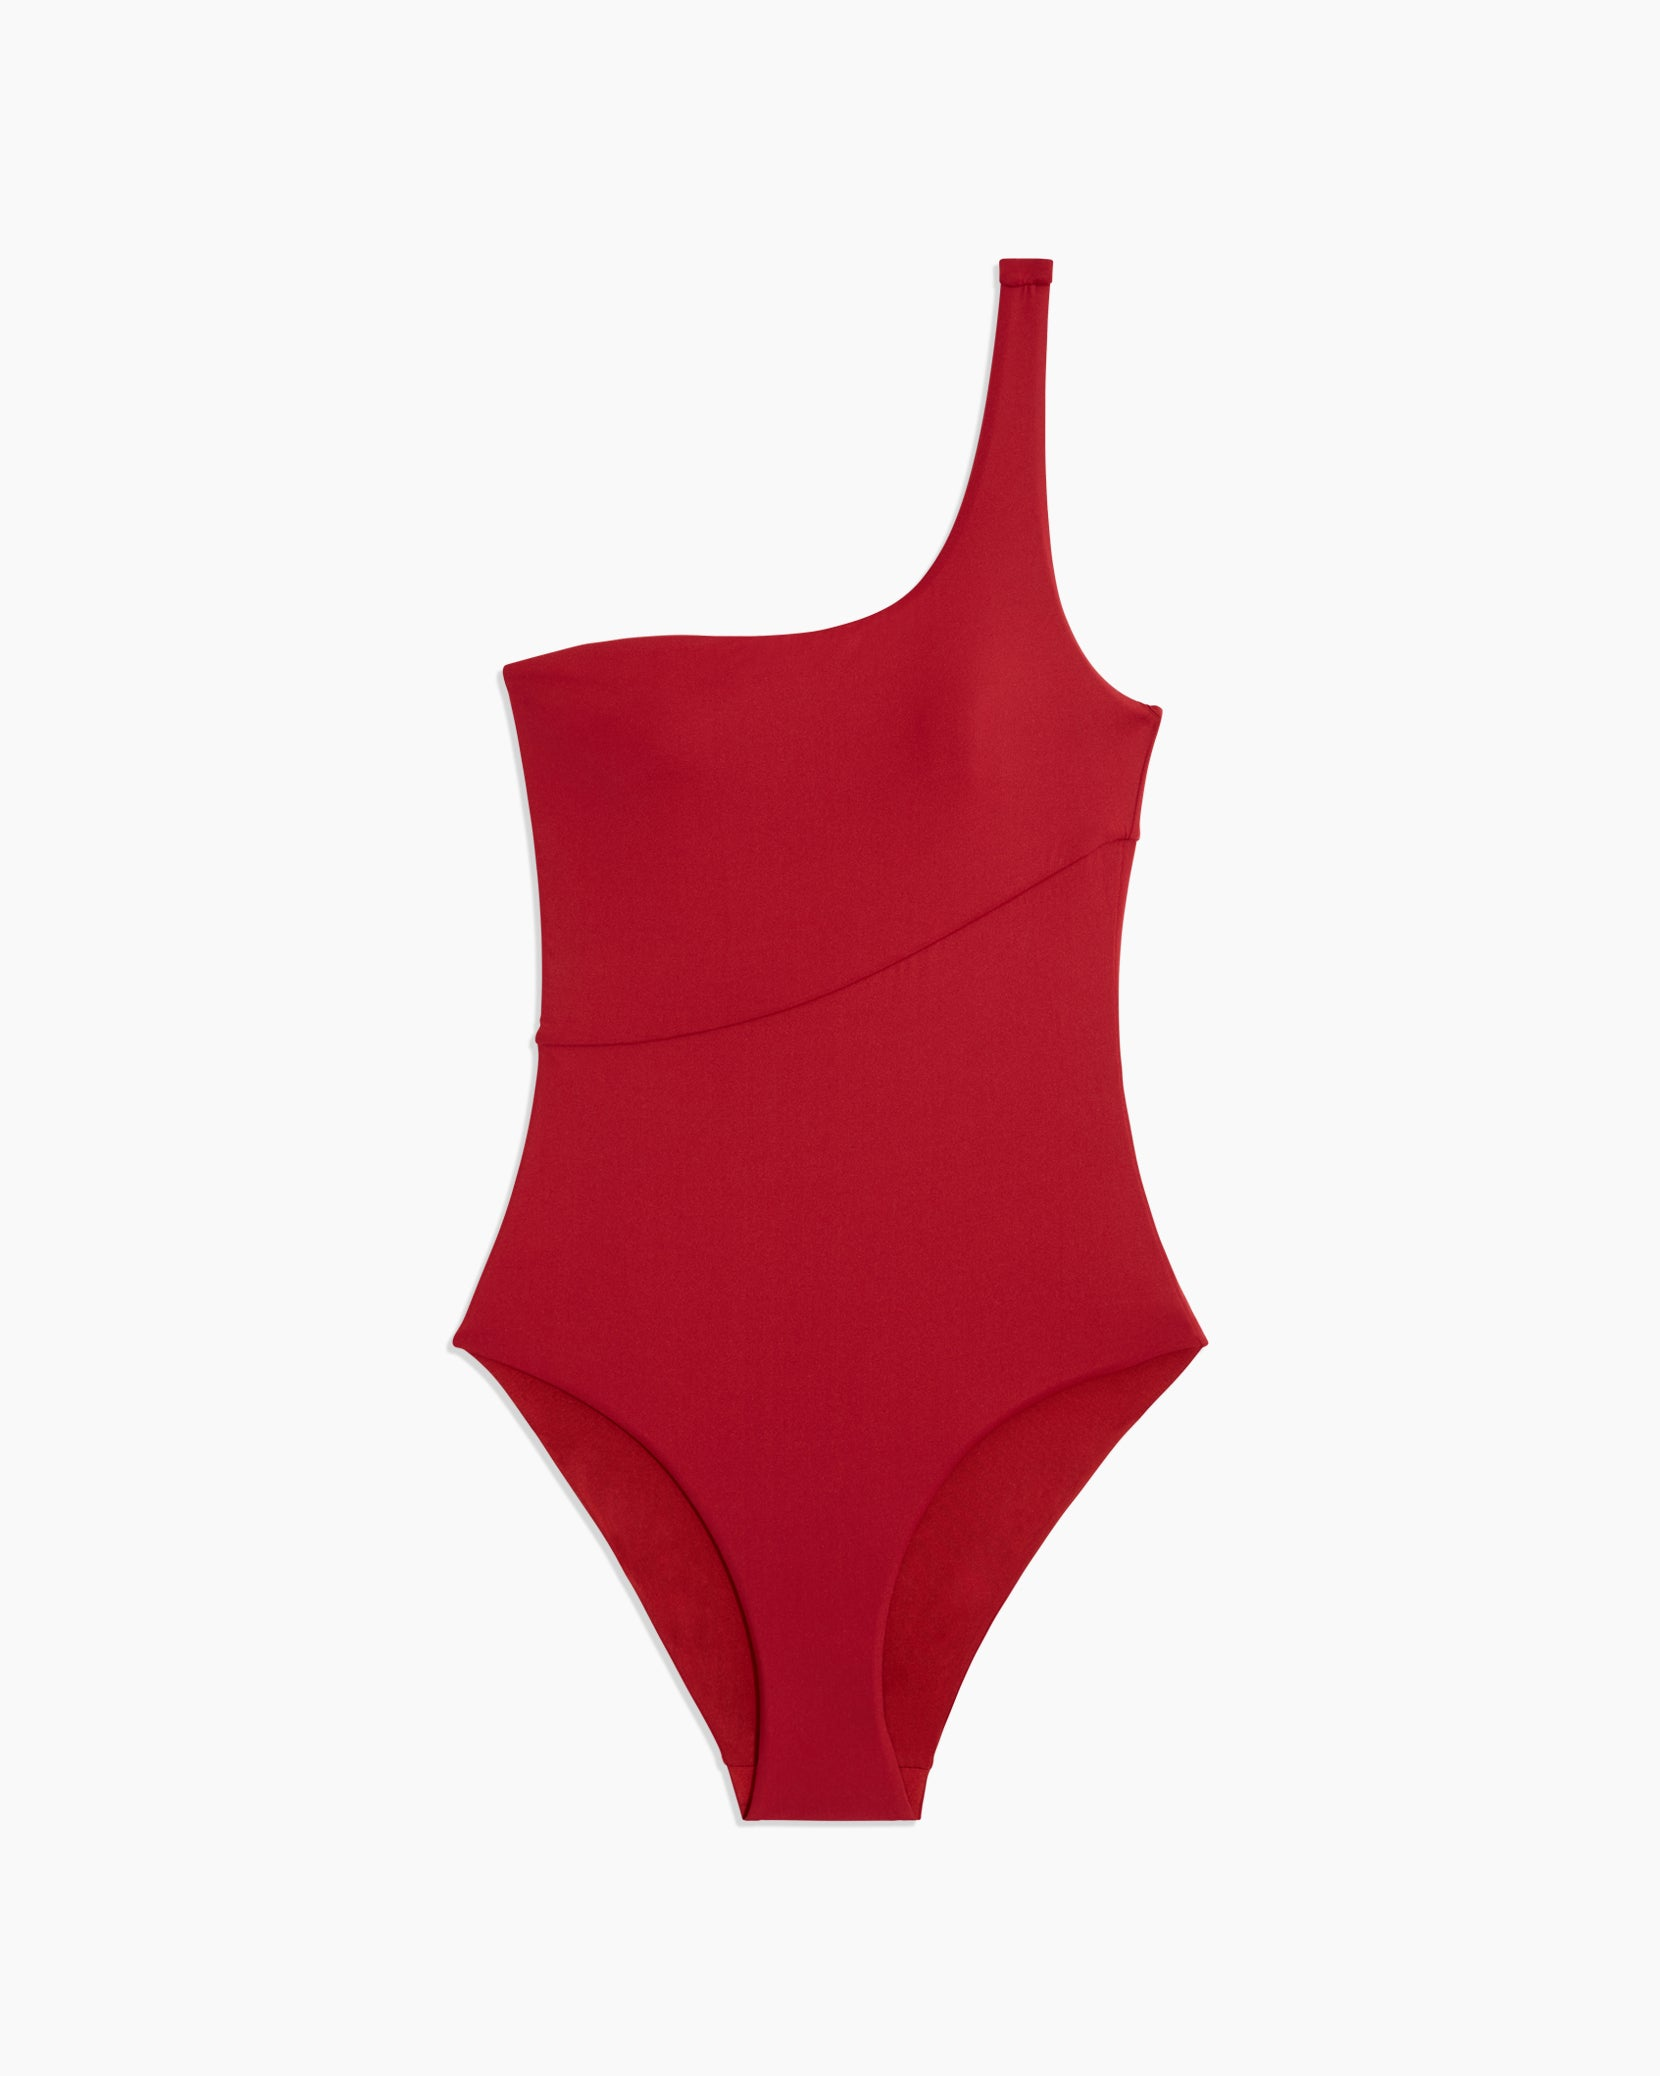 Sienna One Piece in Deep Red - 19 - Onia